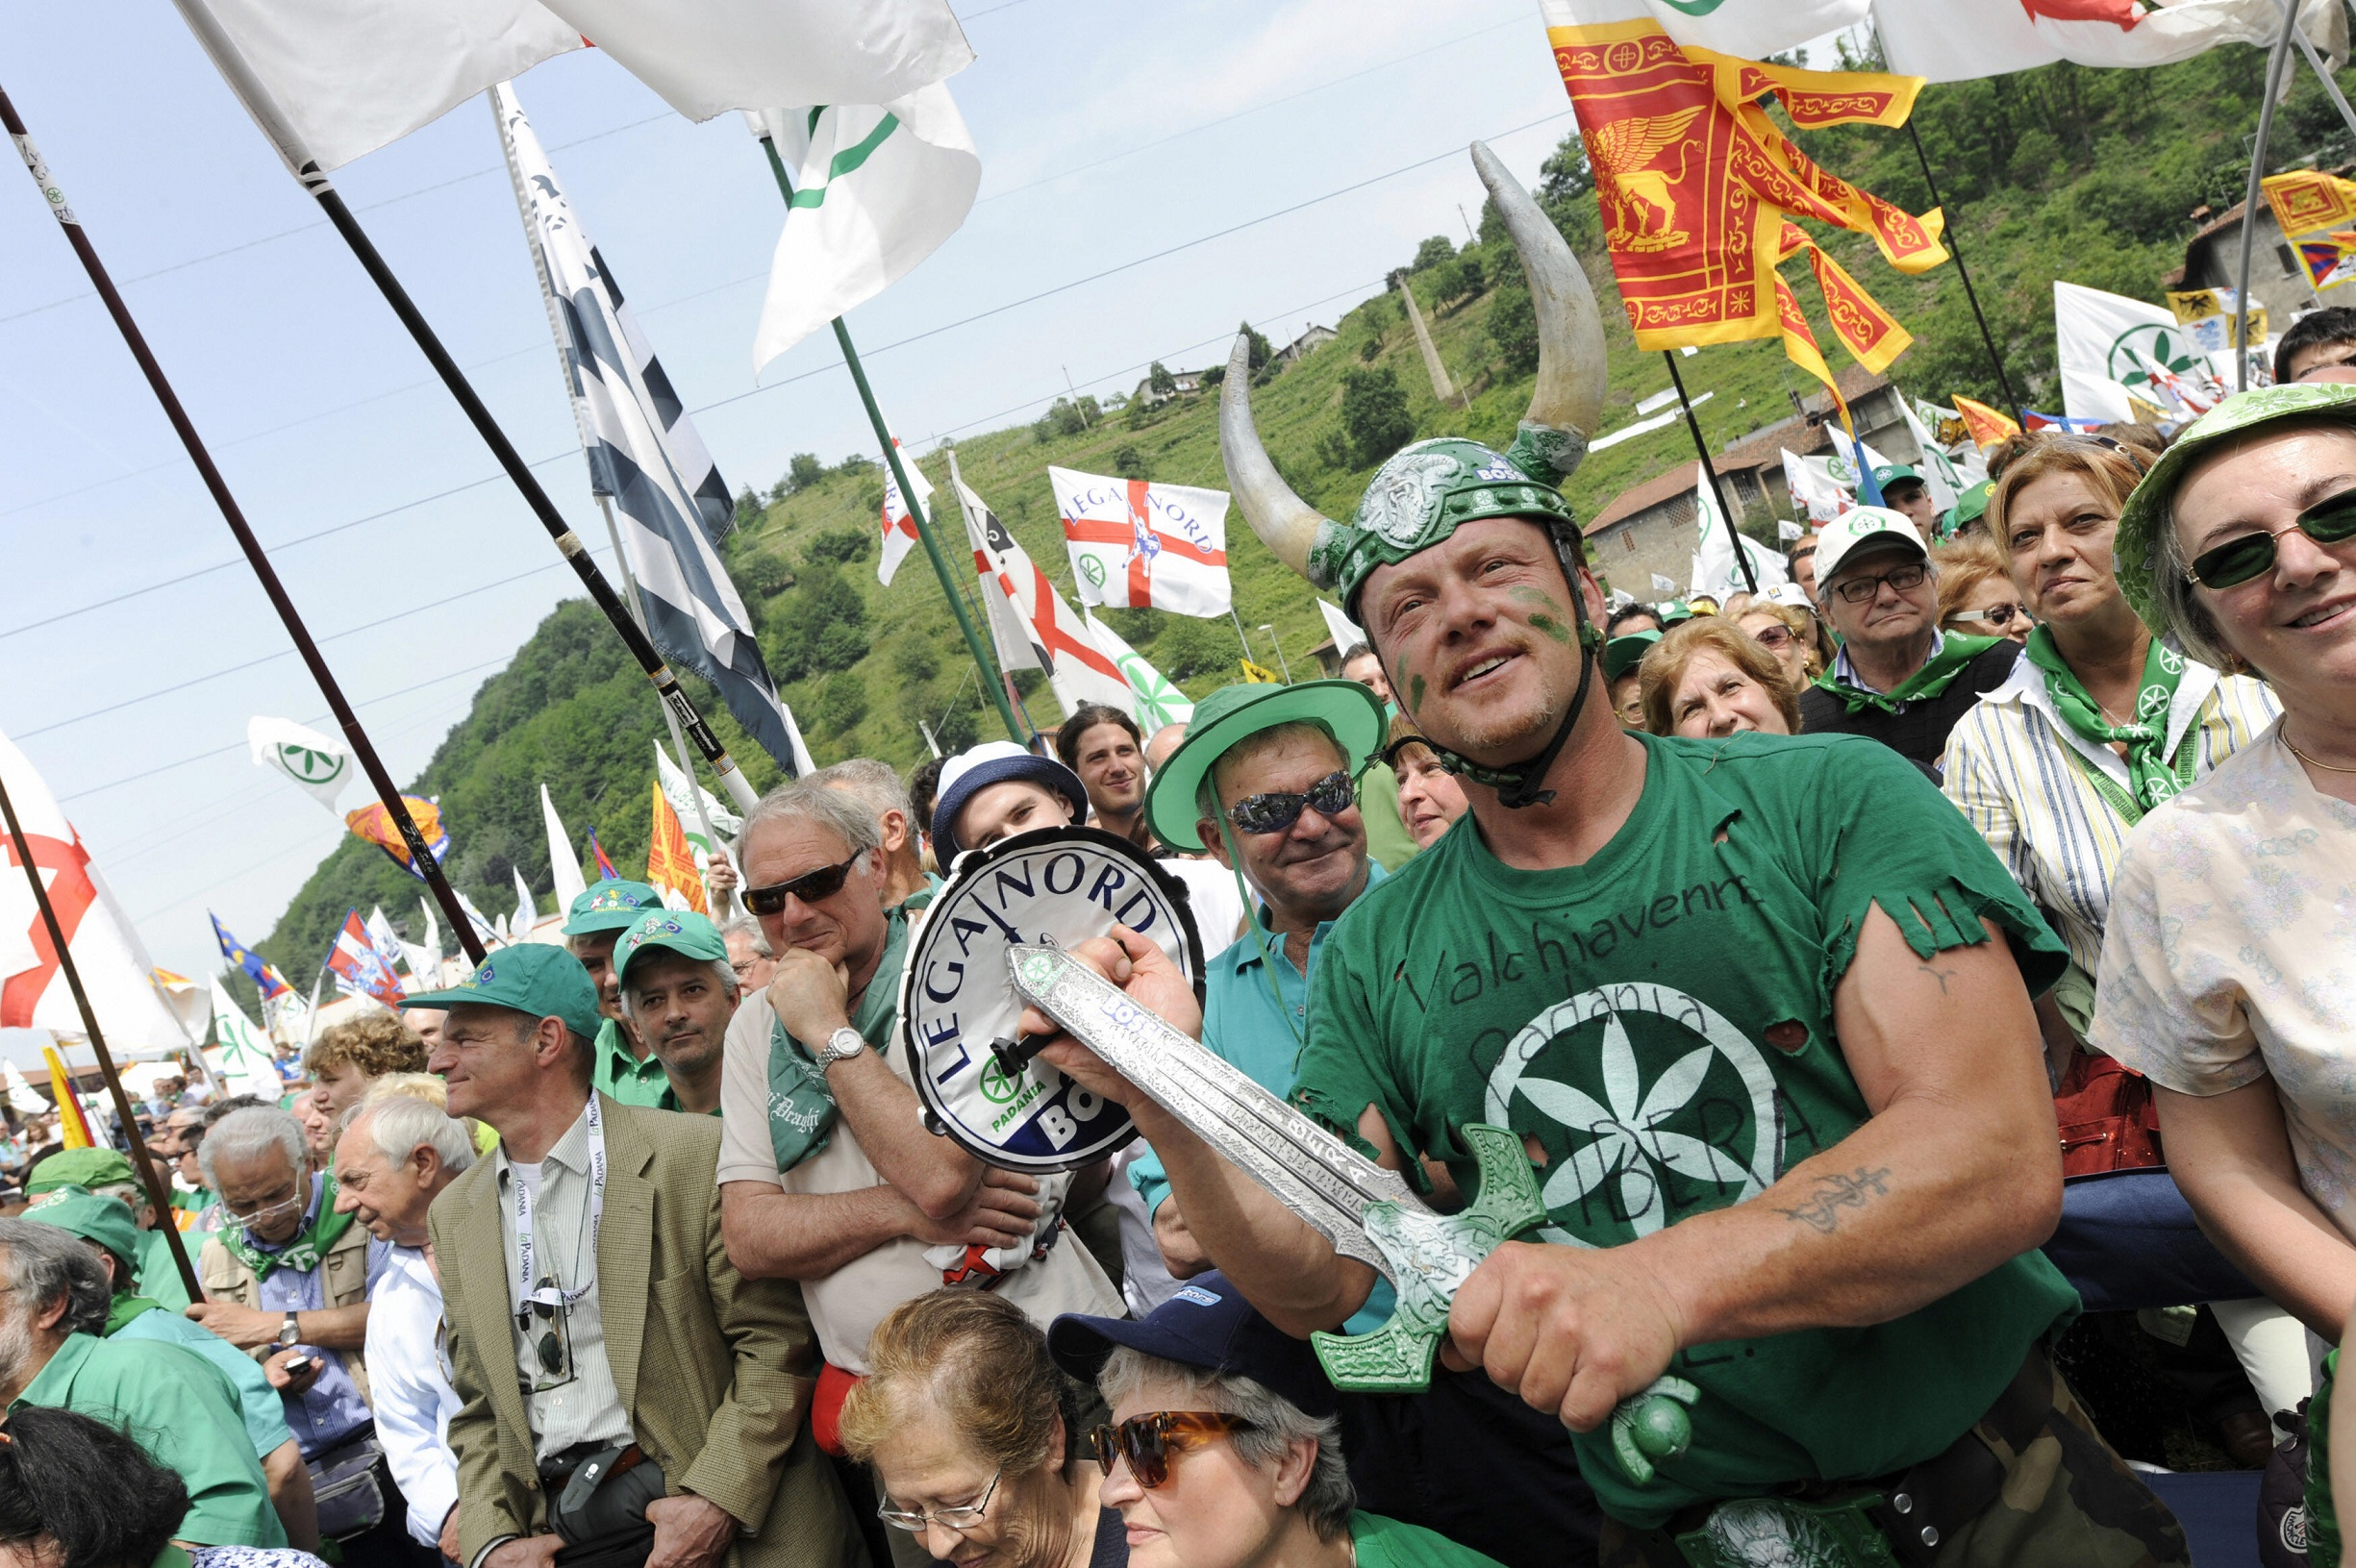 Northern League supporters attend the annual meeting of Lega Nord (North League) in Pontida, about 90 km northeast of Milan on June 1, 2008. Northern League member and Italy's Interior Minister Roberto Maroni promised a zero tolerance for illegal immigratio during his speech. AFP PHOTO / GIUSEPPE CACACE (Photo credit should read GIUSEPPE CACACE/AFP/Getty Images)